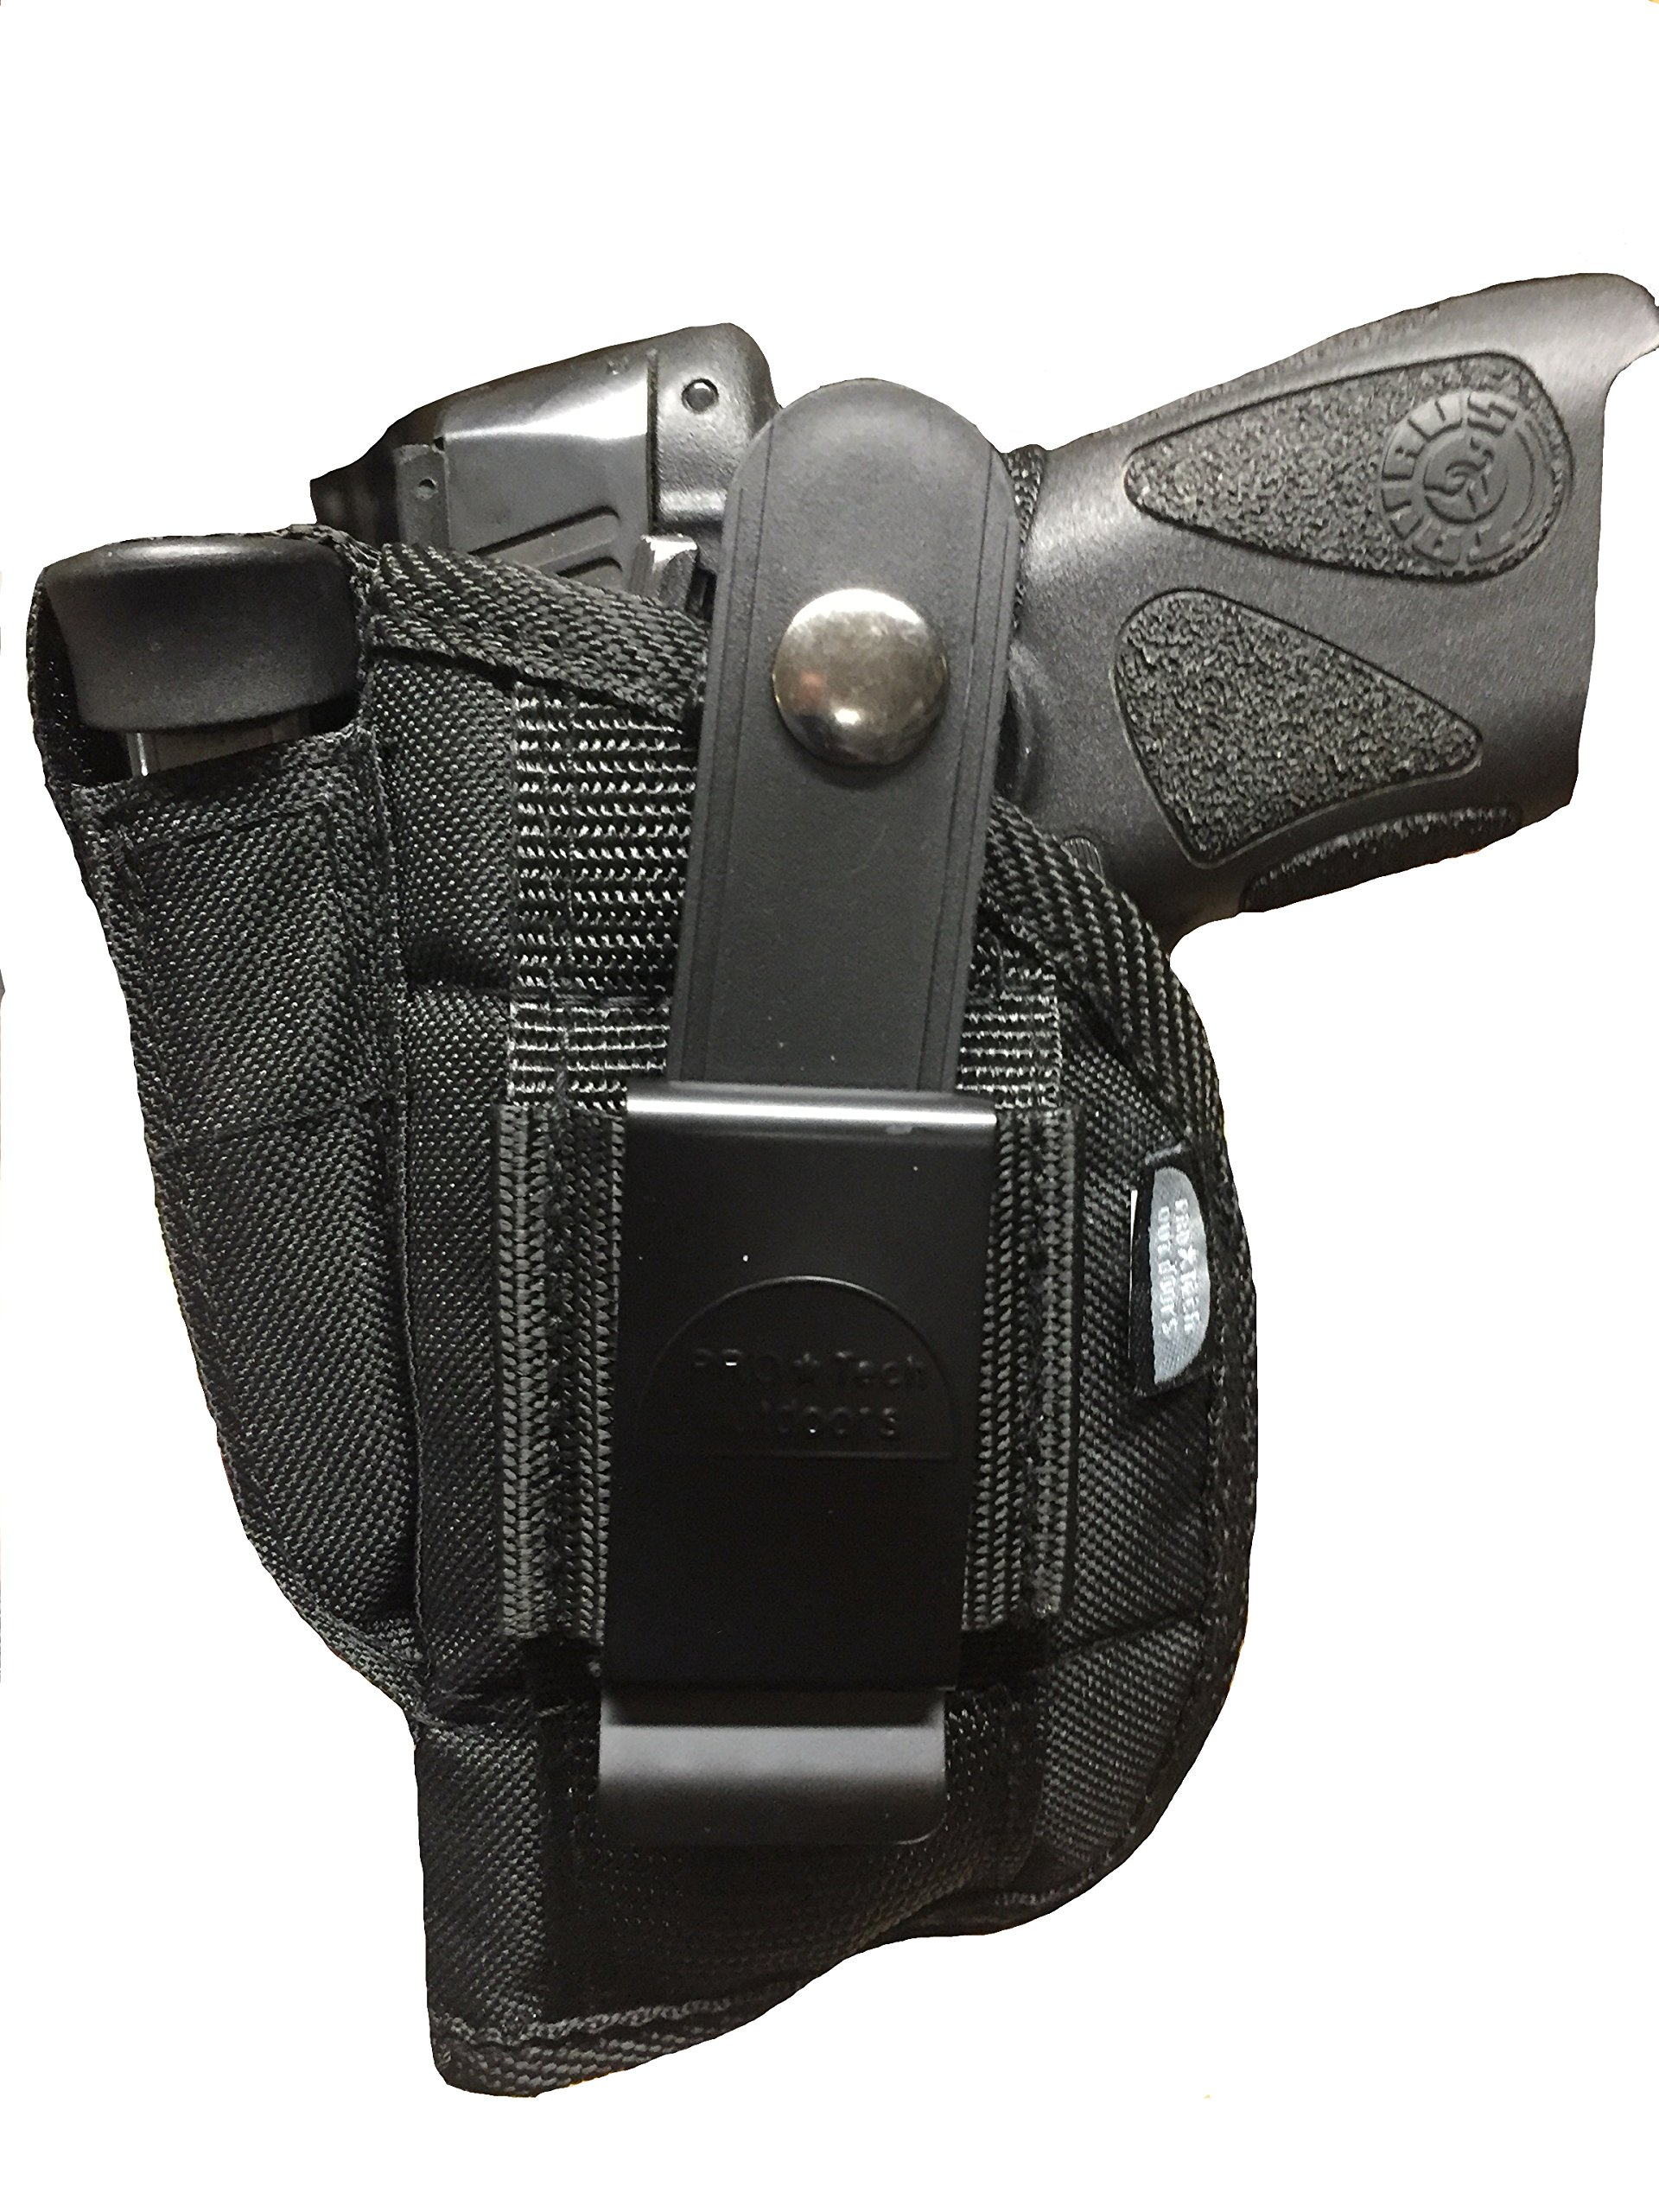 Pro-Tech Outdoors Gun Holster fits Smith and Wesson M&P Shield 40,45 With Laser